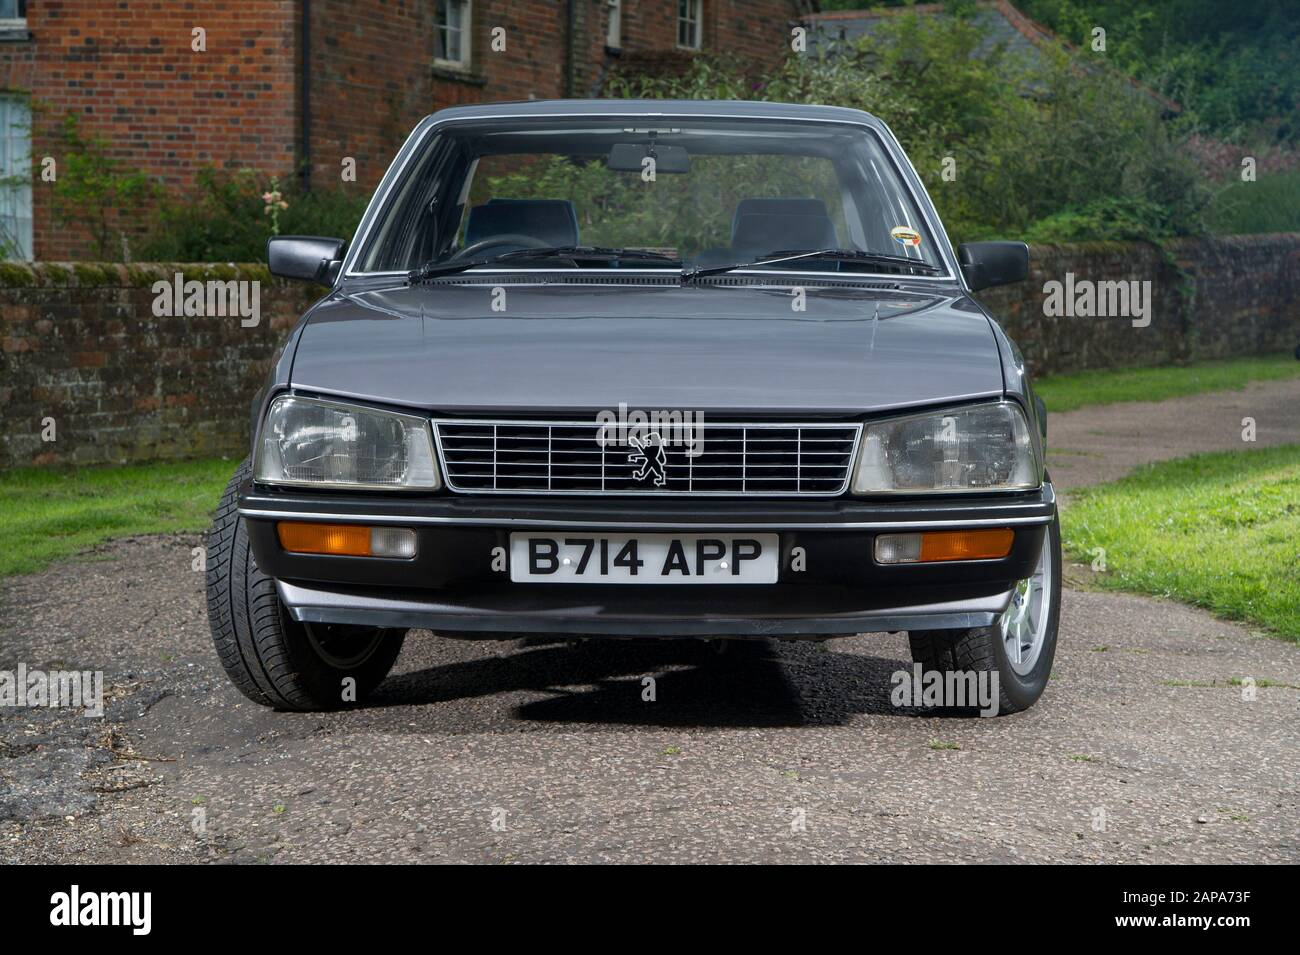 Peugeot Saloon High Resolution Stock Photography And Images Alamy